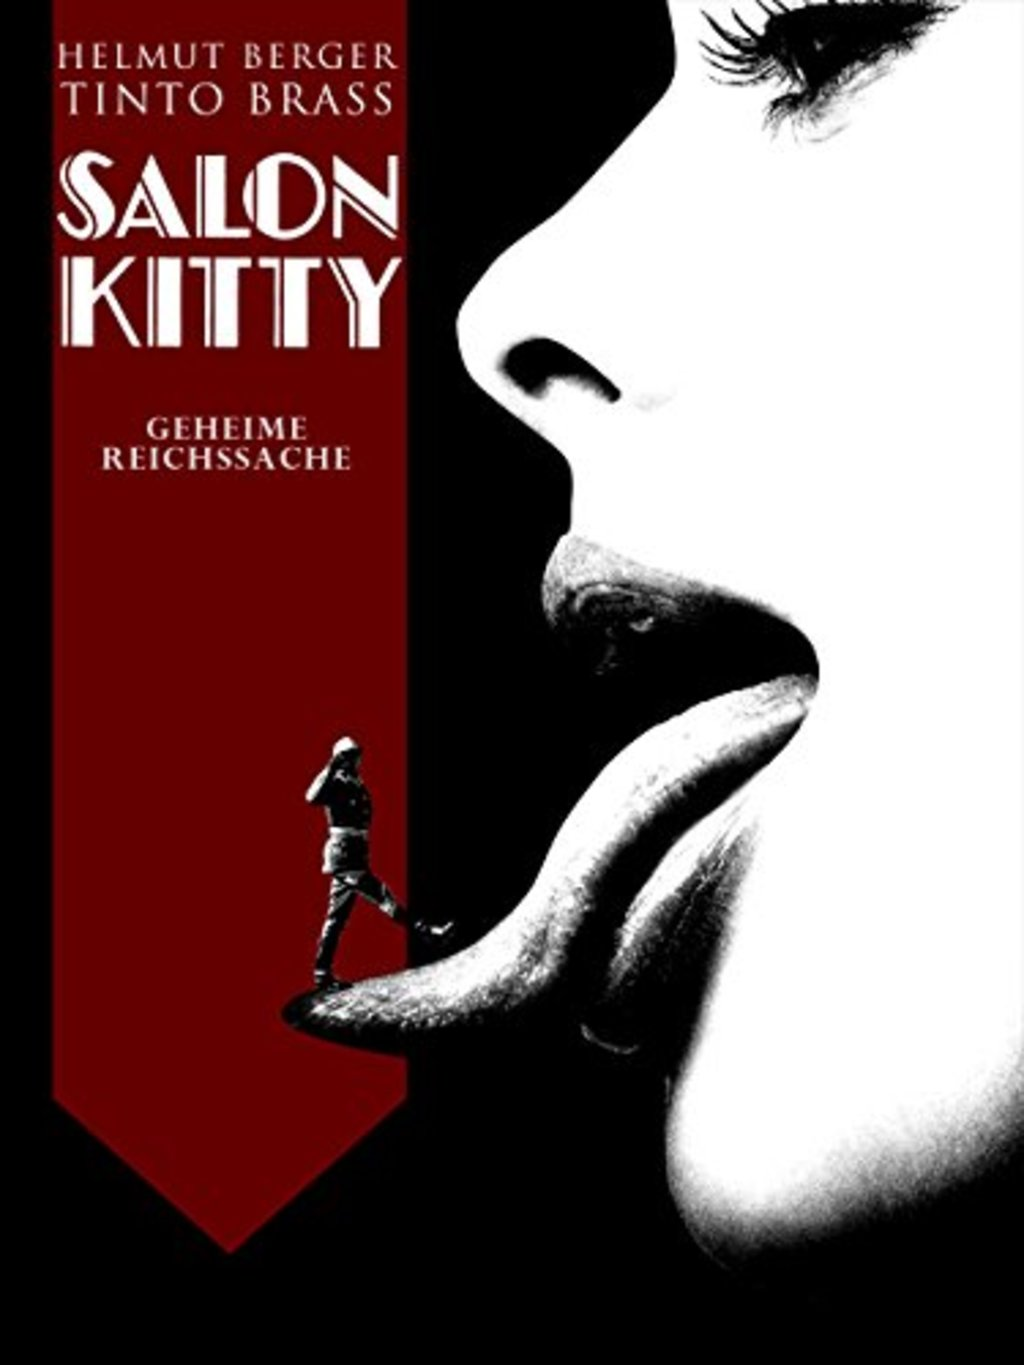 Salon Kitty Watch Salon Kitty On Netflix Today Netflixmovies